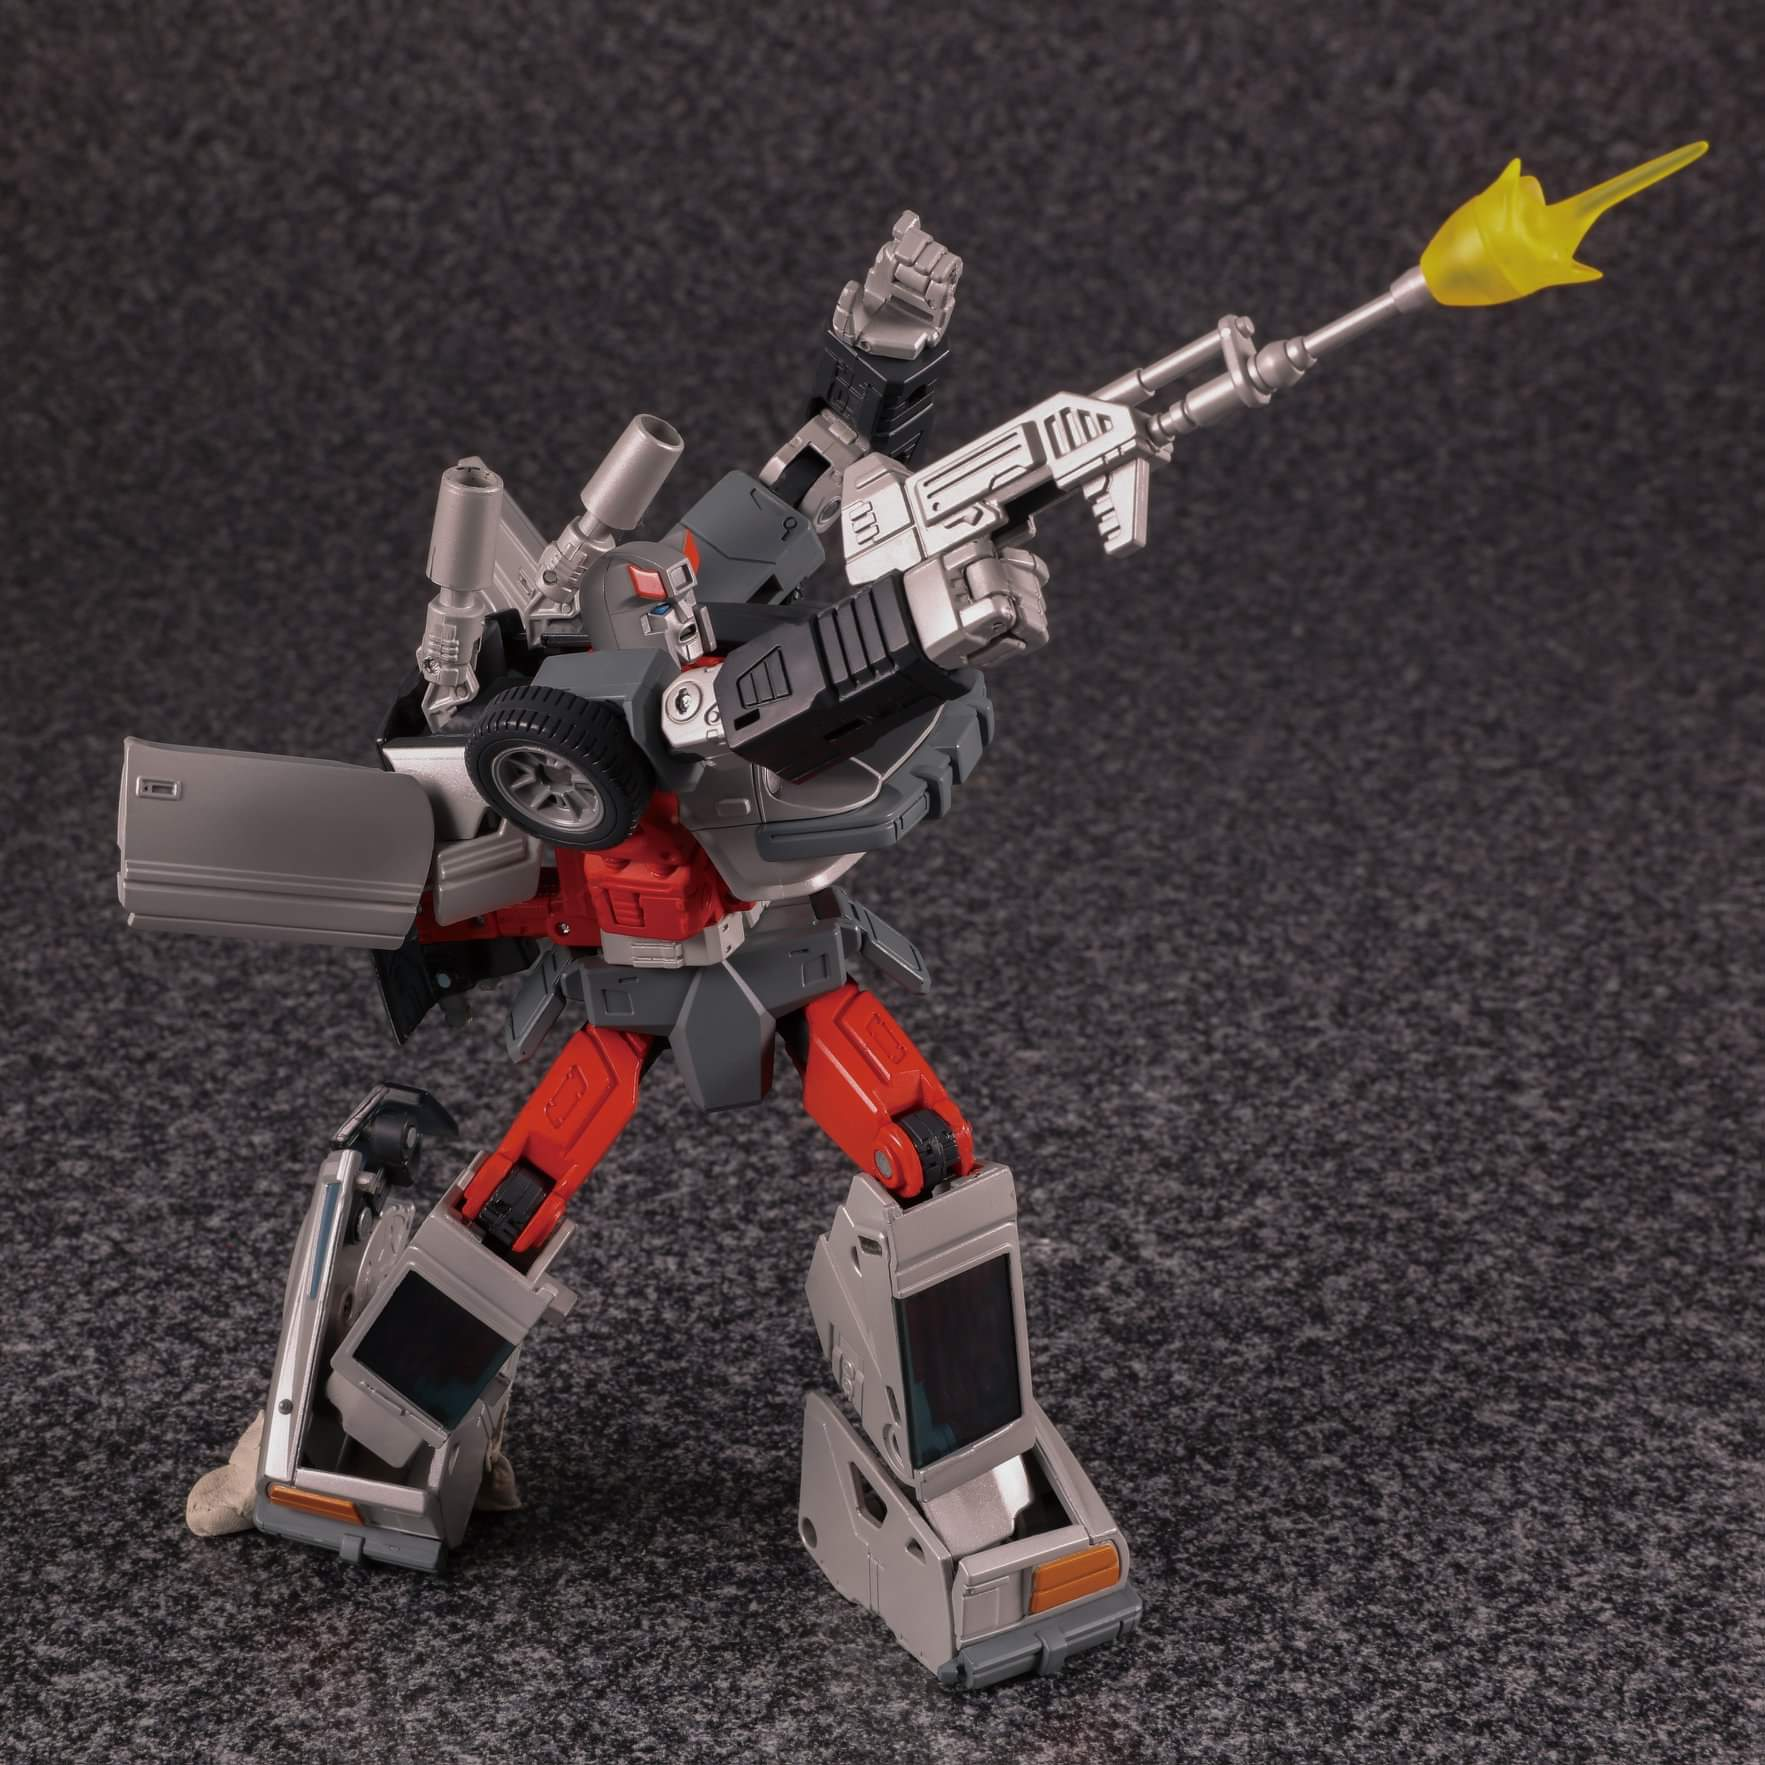 [Masterpiece] MP-18 Bluestreak/Jaseur - Page 3 P3kwnEGj_o